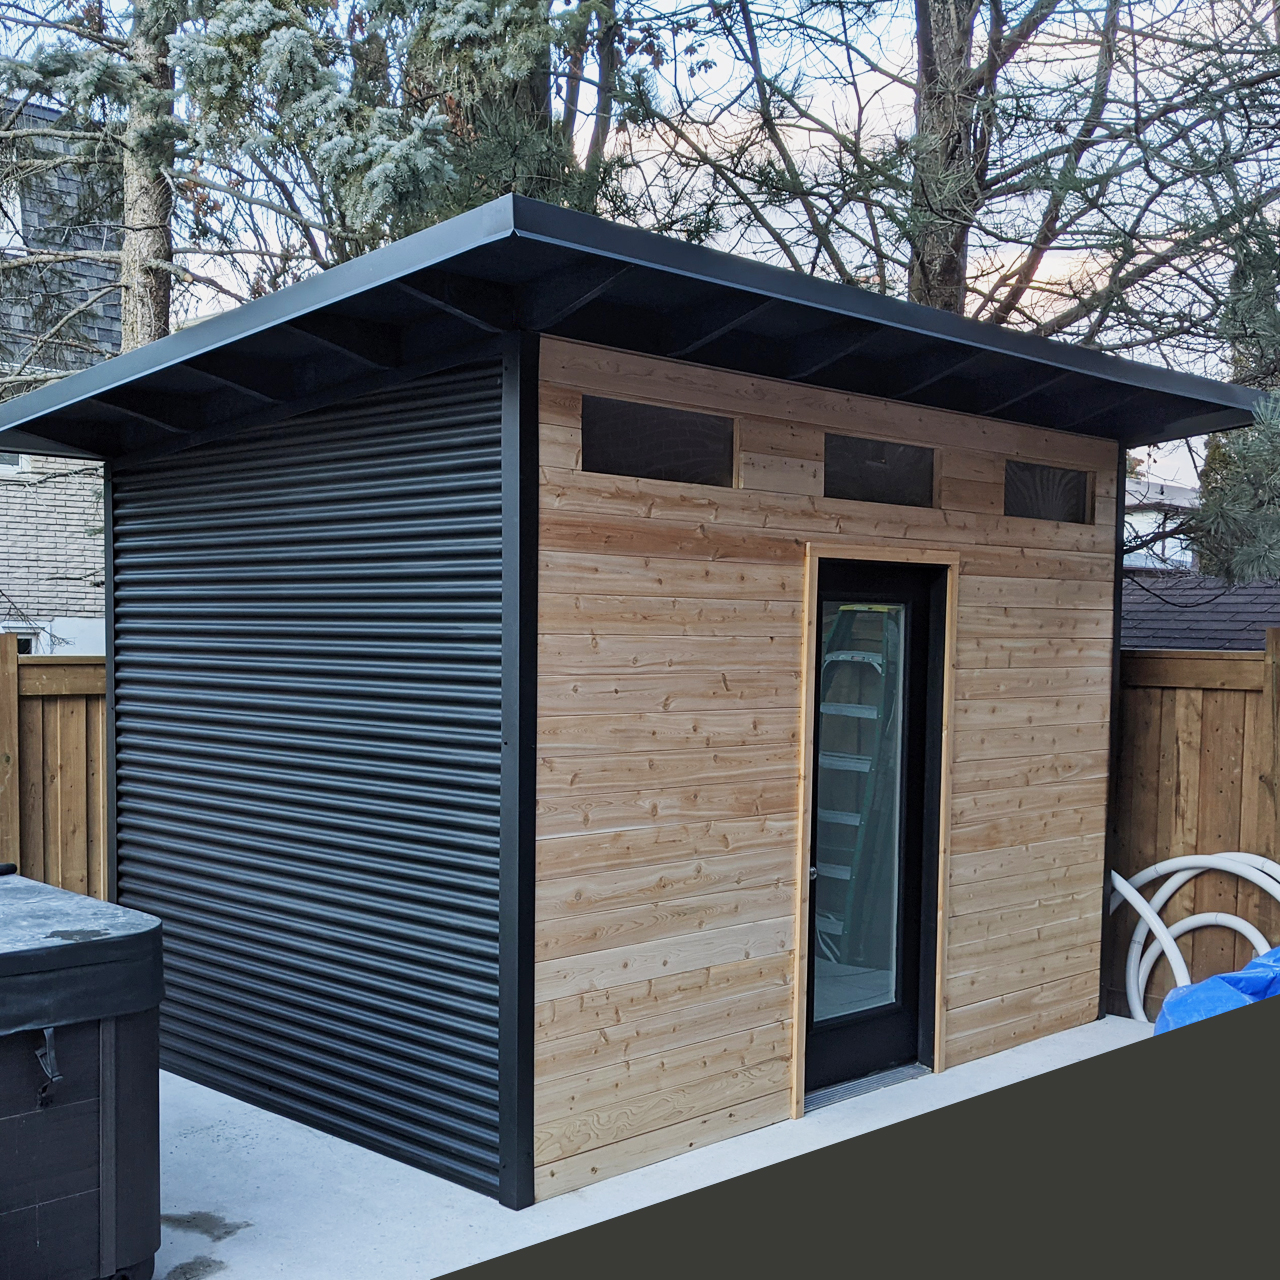 12' x 8' Advanced Shed with Eastern White Cedar and Jet Black Steel